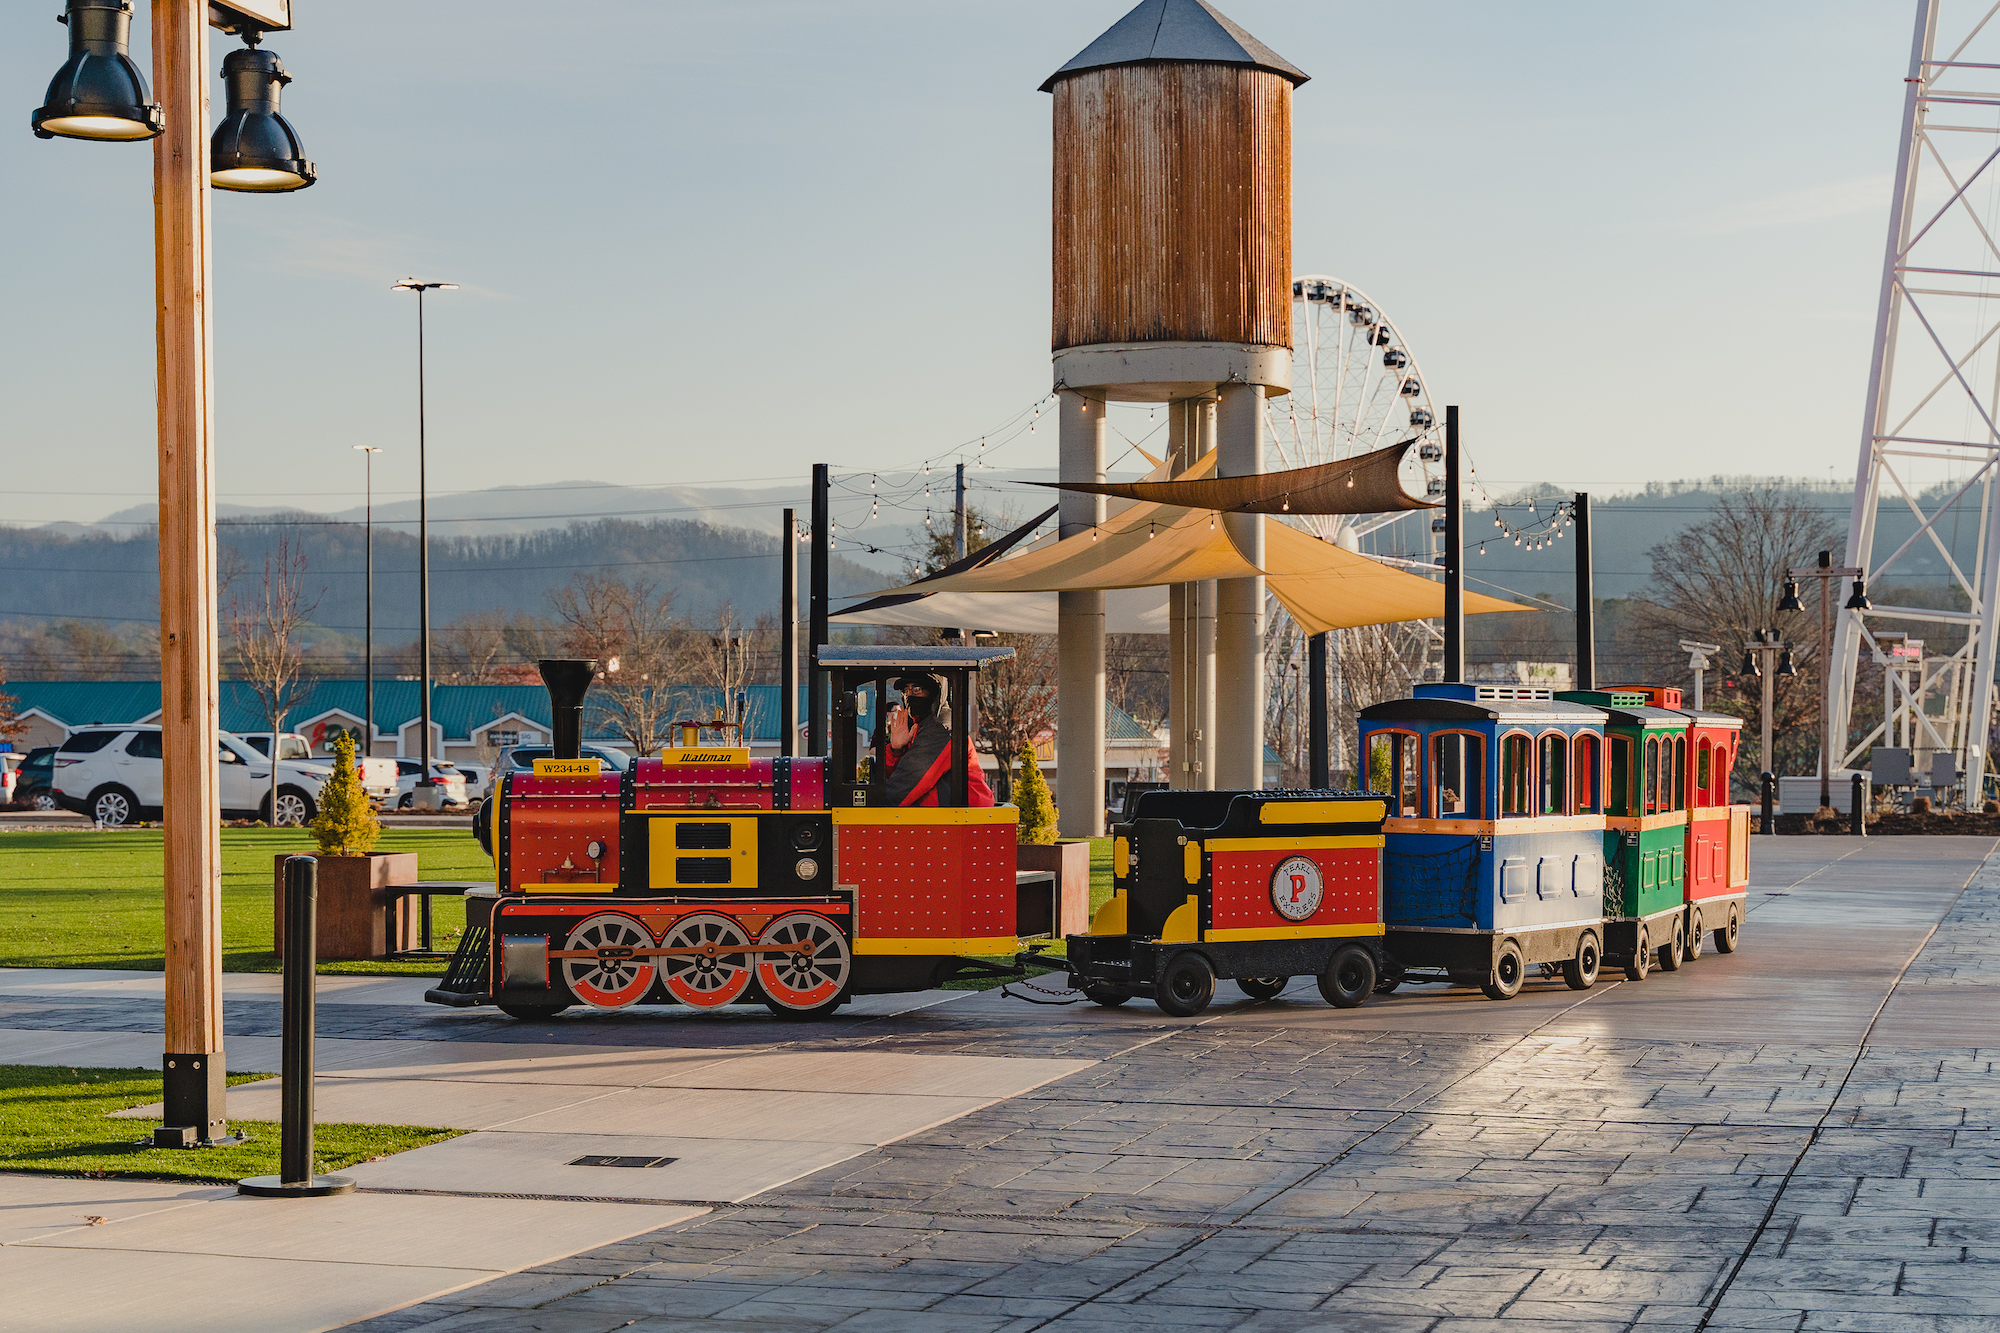 Choo choo Train ride at the mountain mile mall. outside. in Pigeon Forge Tennessee